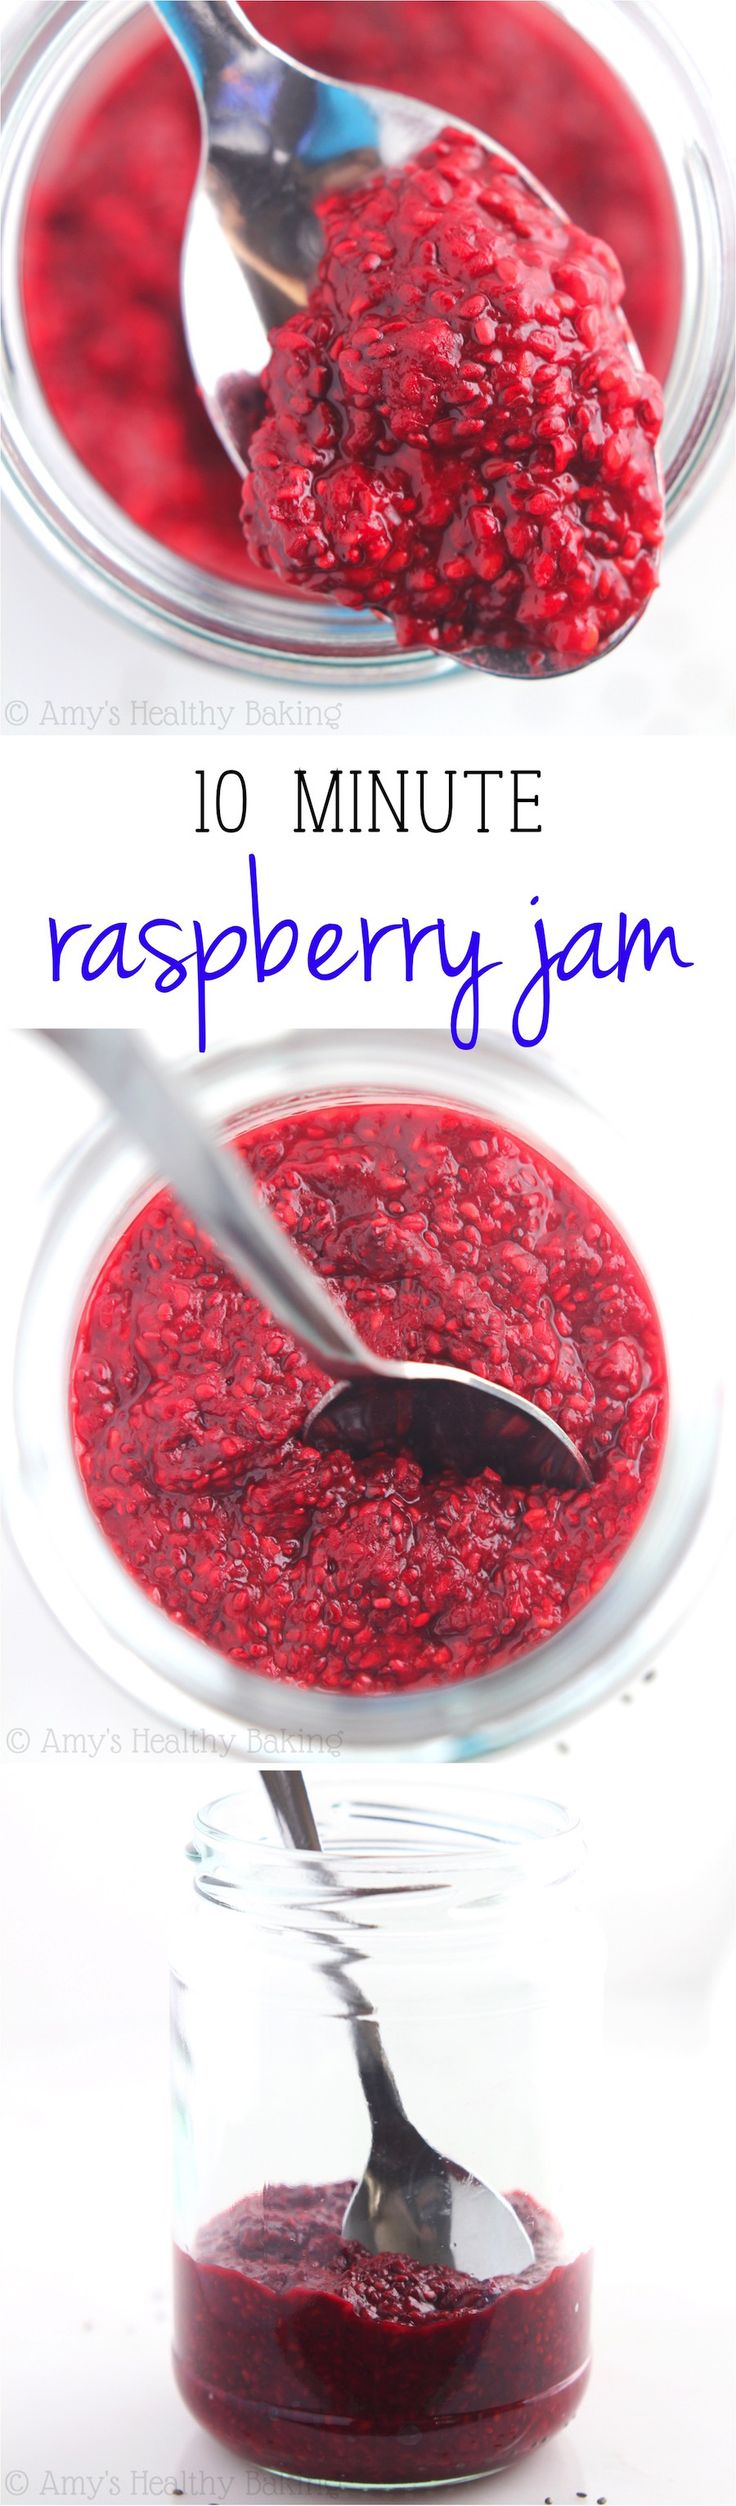 10 Minute Clean-Eating Raspberry Jam -- just 3 ingredients & no sugar! It's the easiest, sweetest & healthiest recipe I've ever tried!